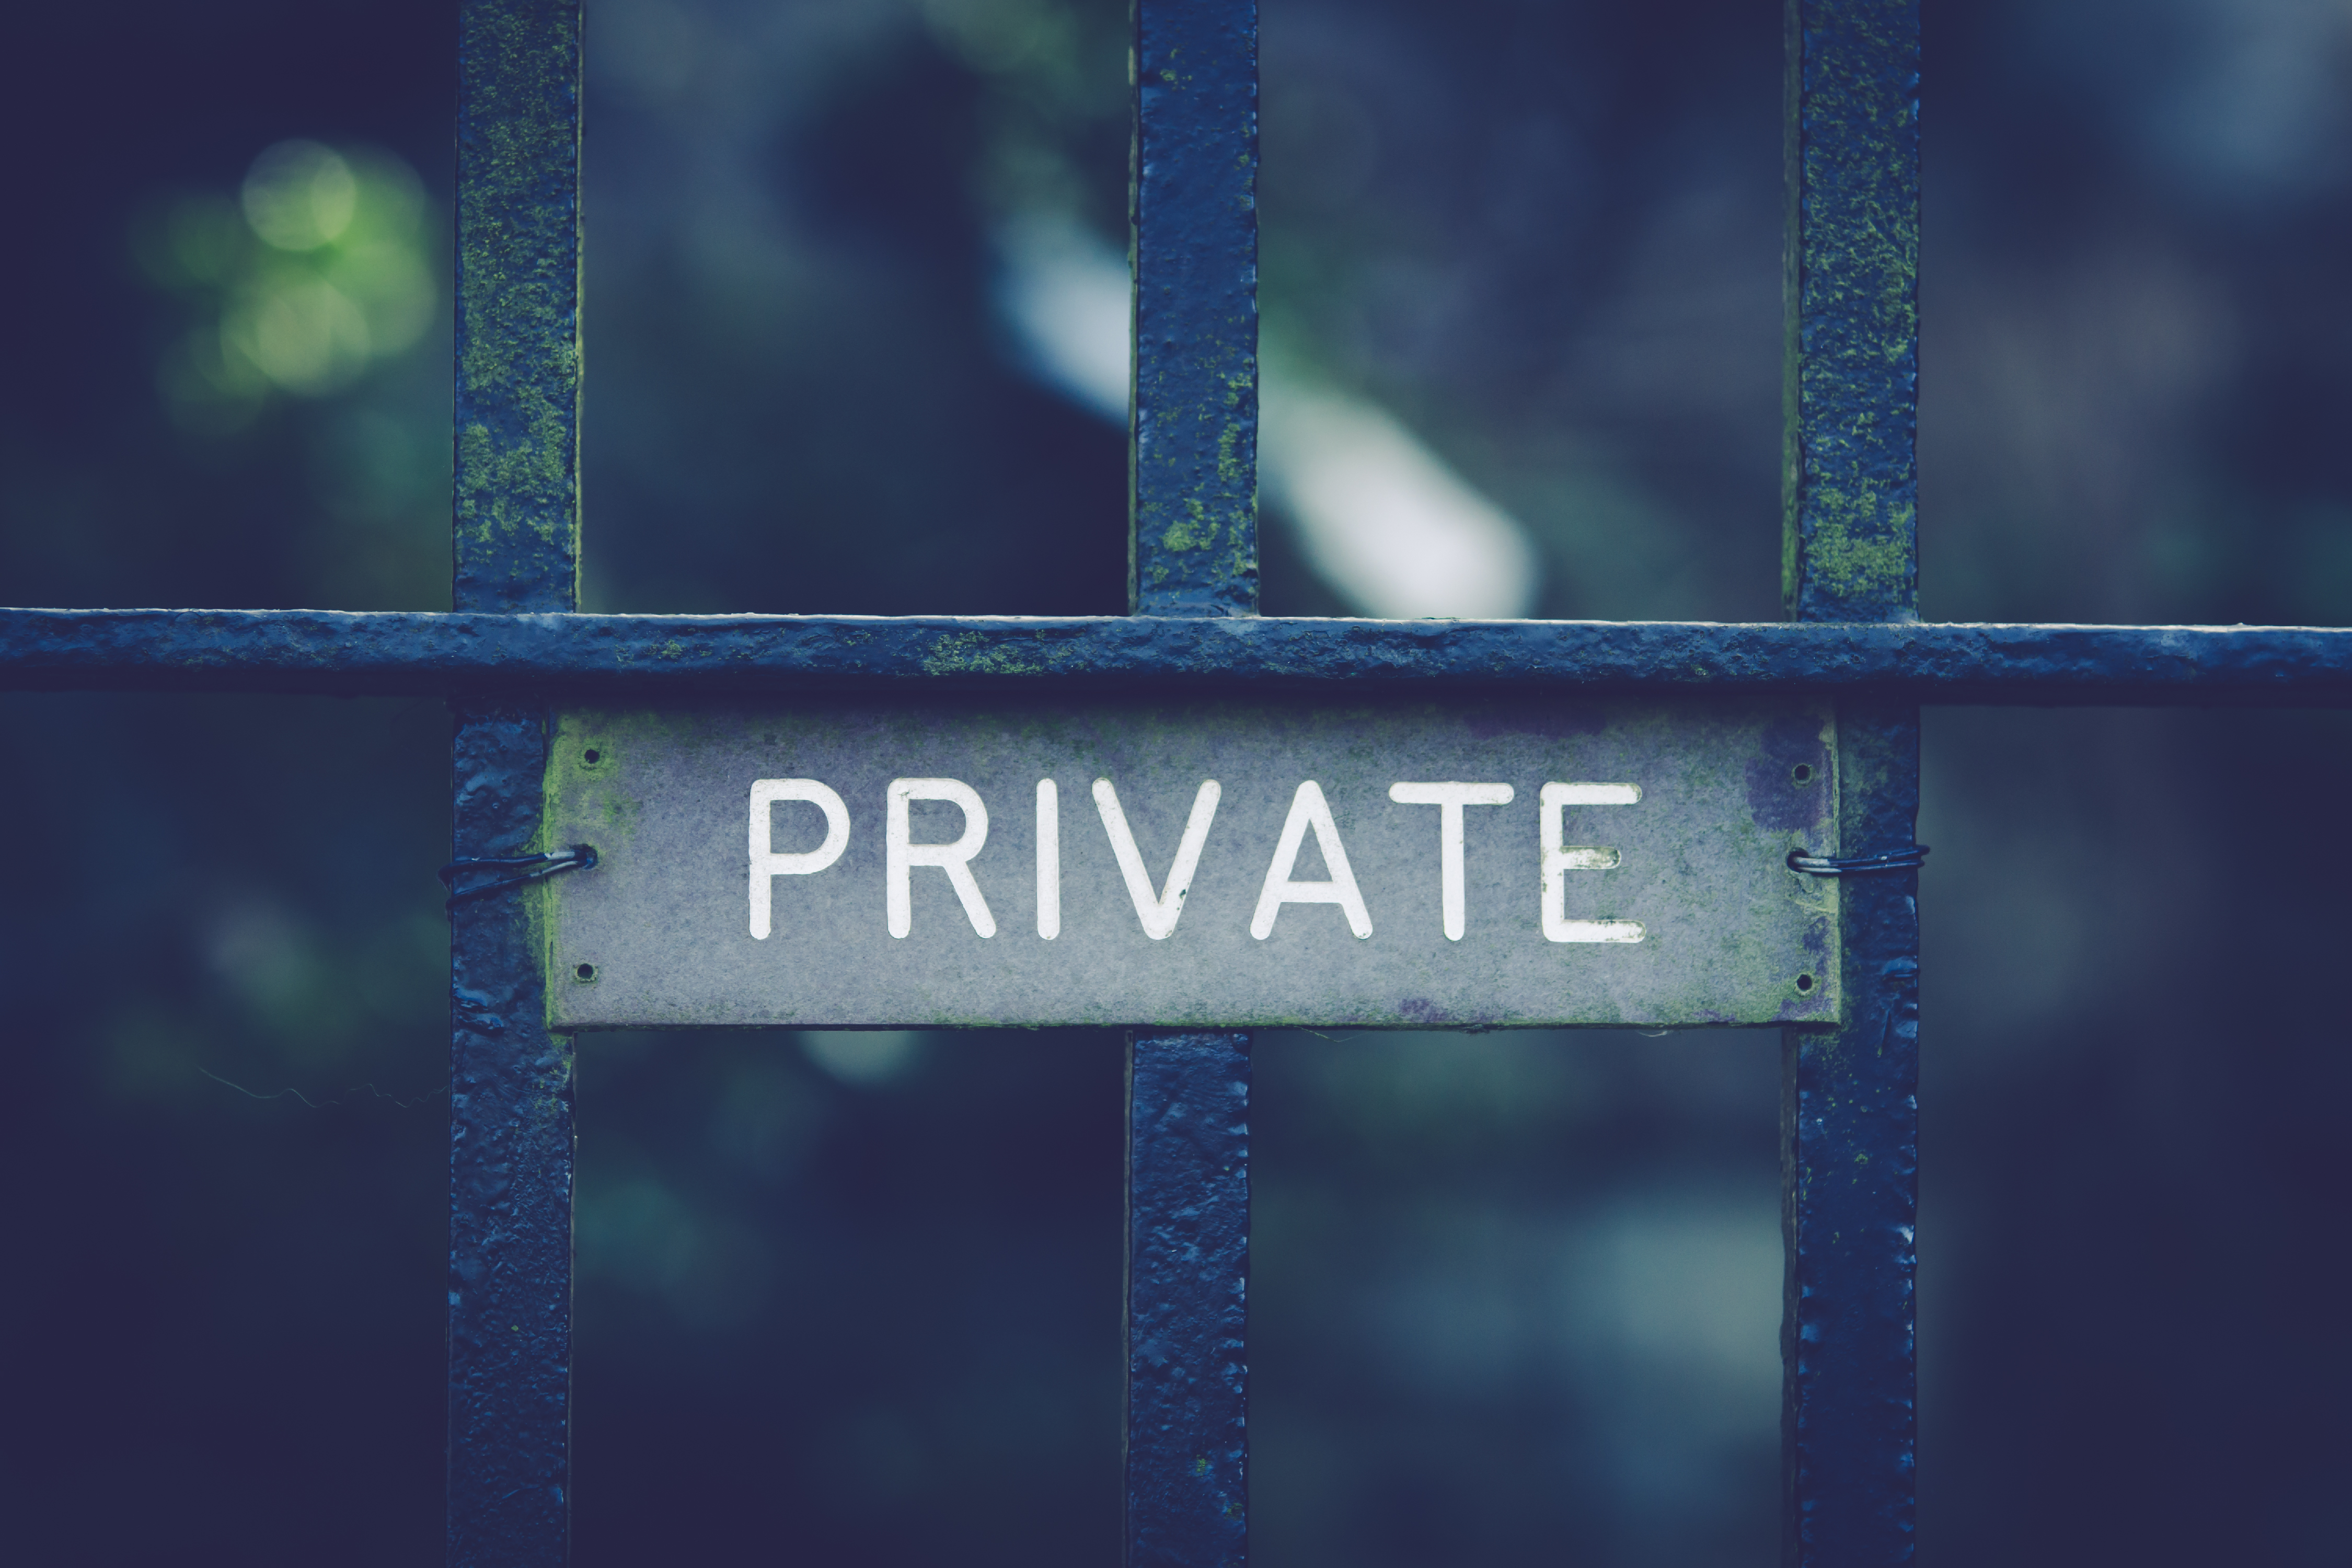 The simple changes required to privacy notices under the GDPR